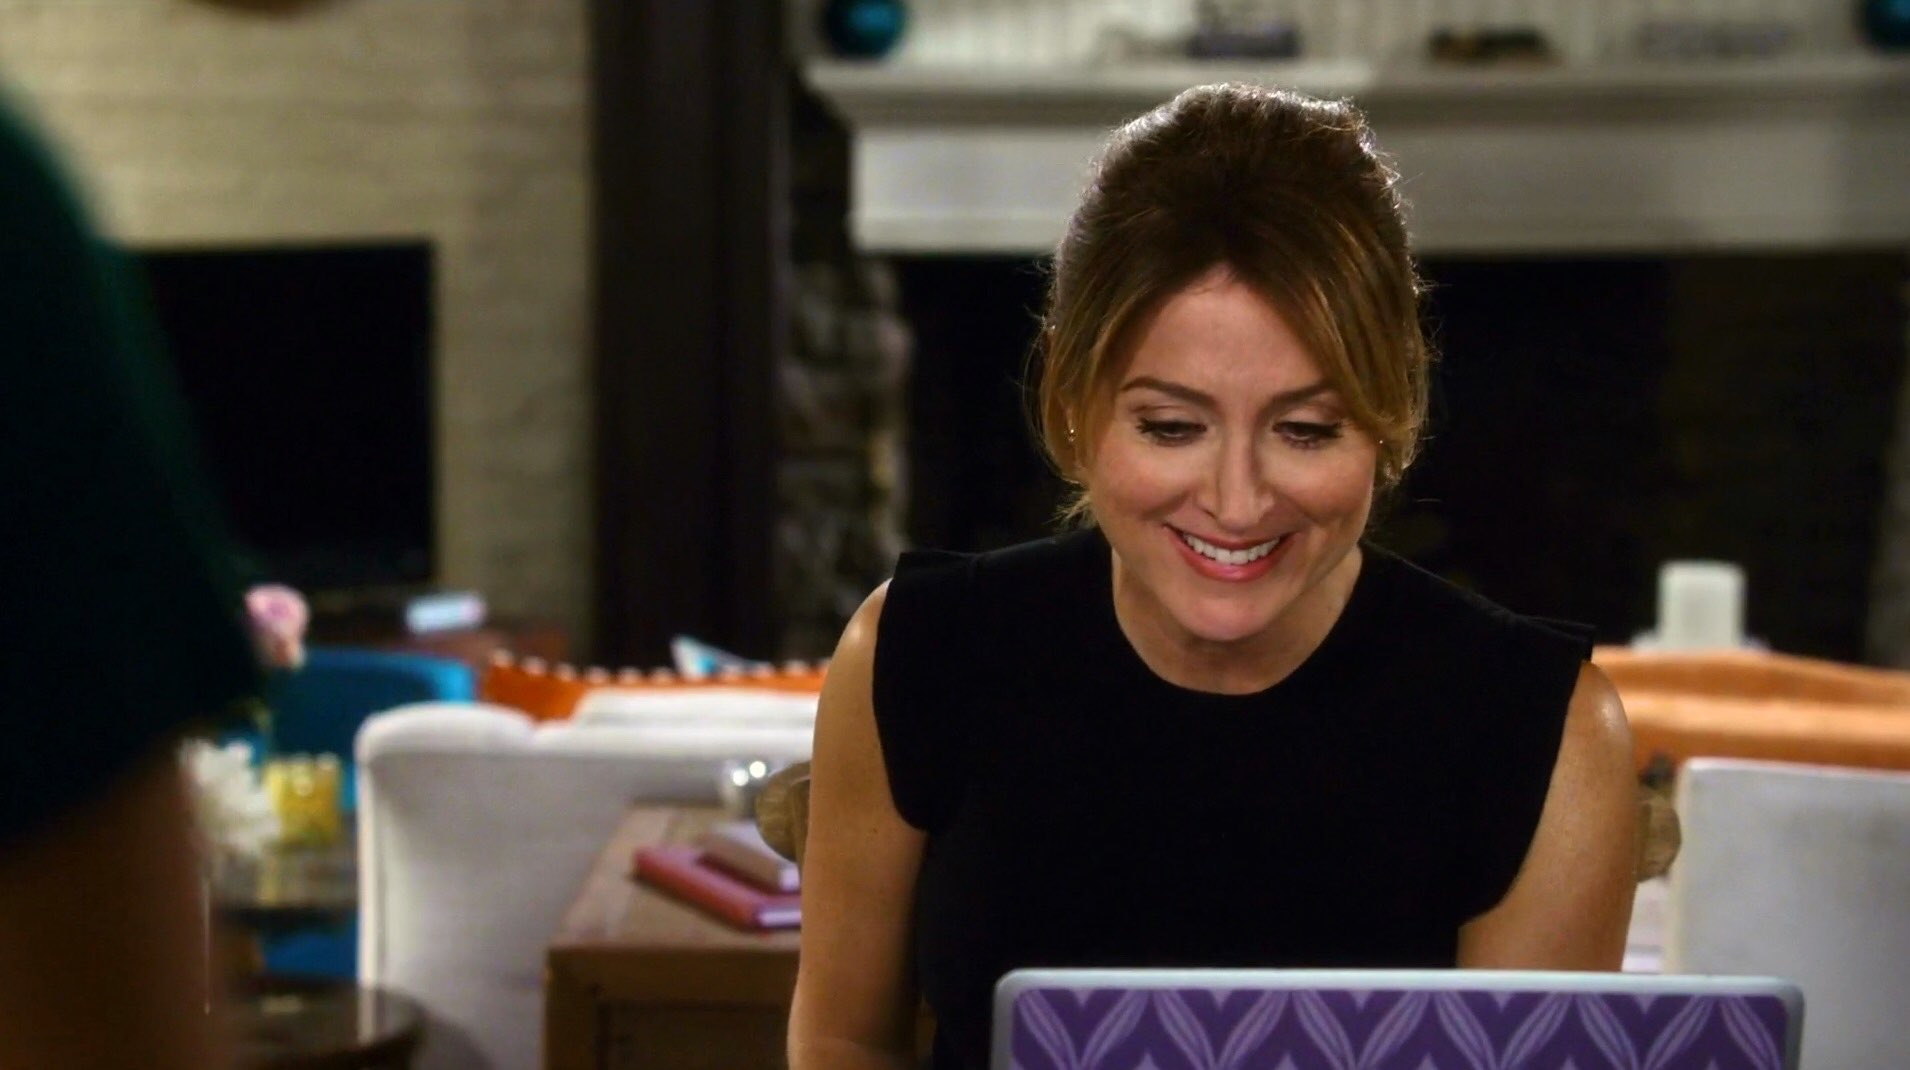 #MauraMonday  Our expression every time we see a Maura clip. Miss this character. Hope everyone has a wonderful day! https://t.co/zkw9KrgPWU